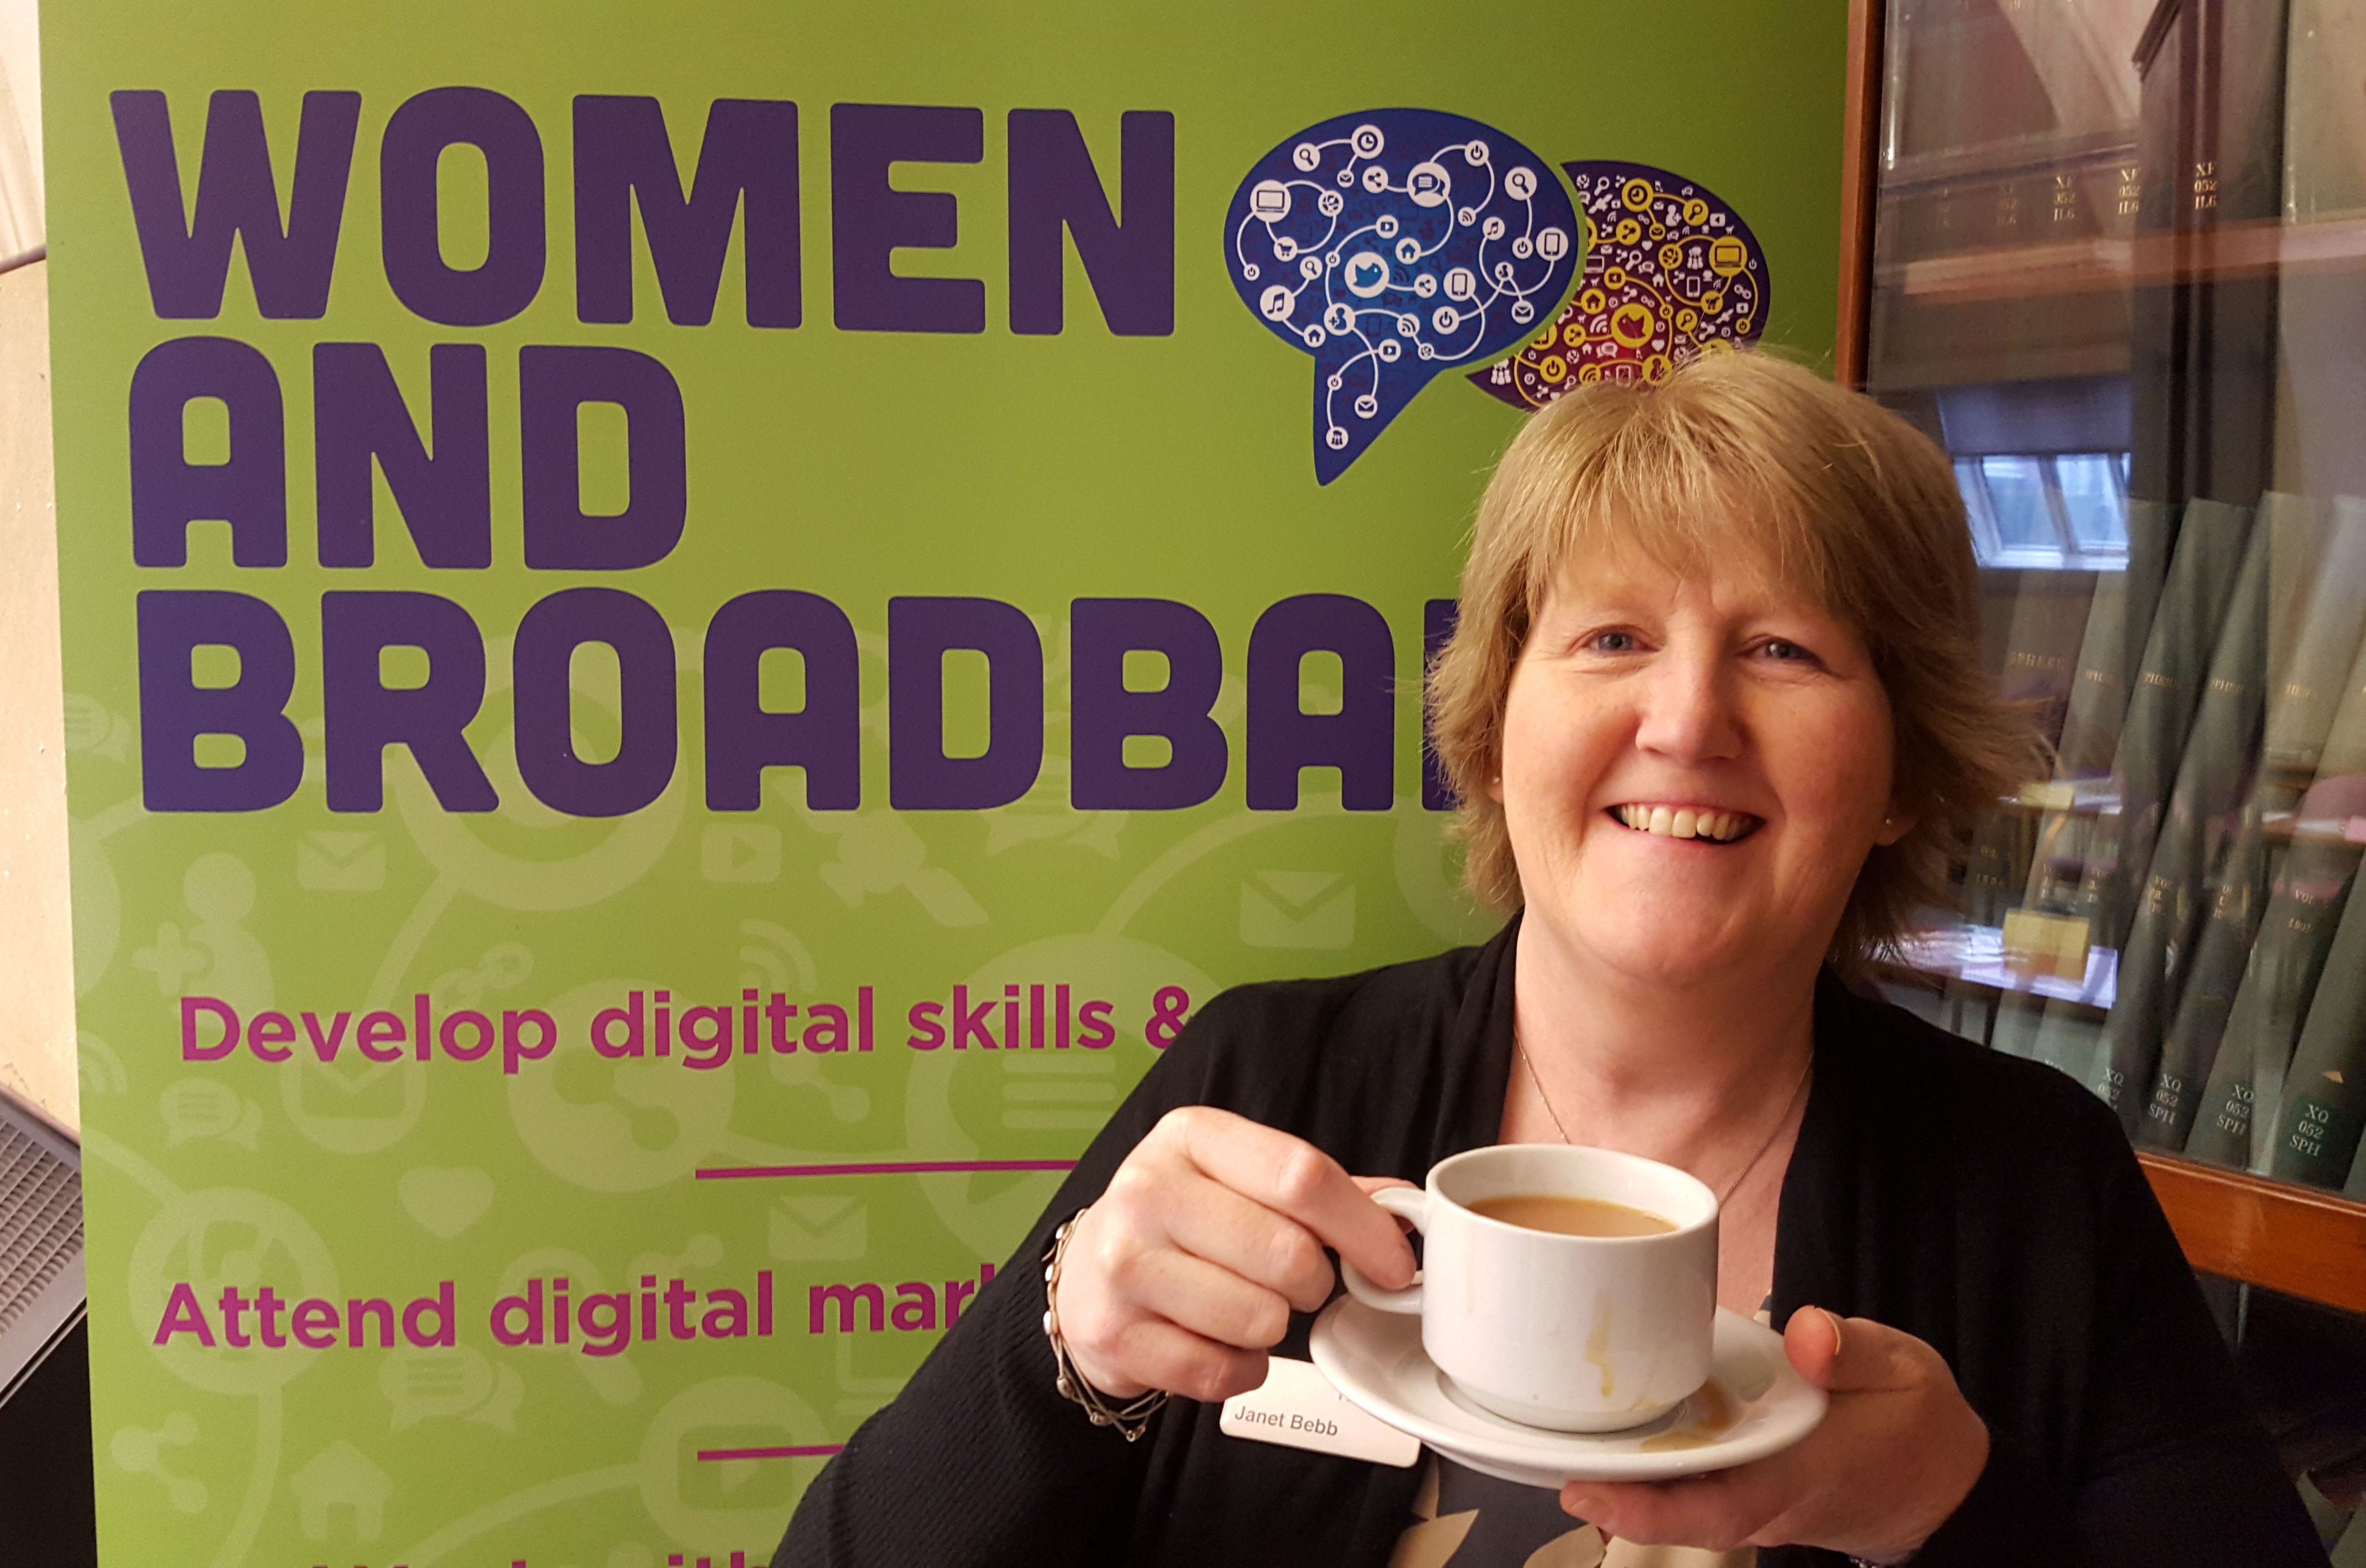 Superfast West Yorkshire Ladies That Launch - Blogging for Business Workshop by Janet Bebb, Social Progress Ltd